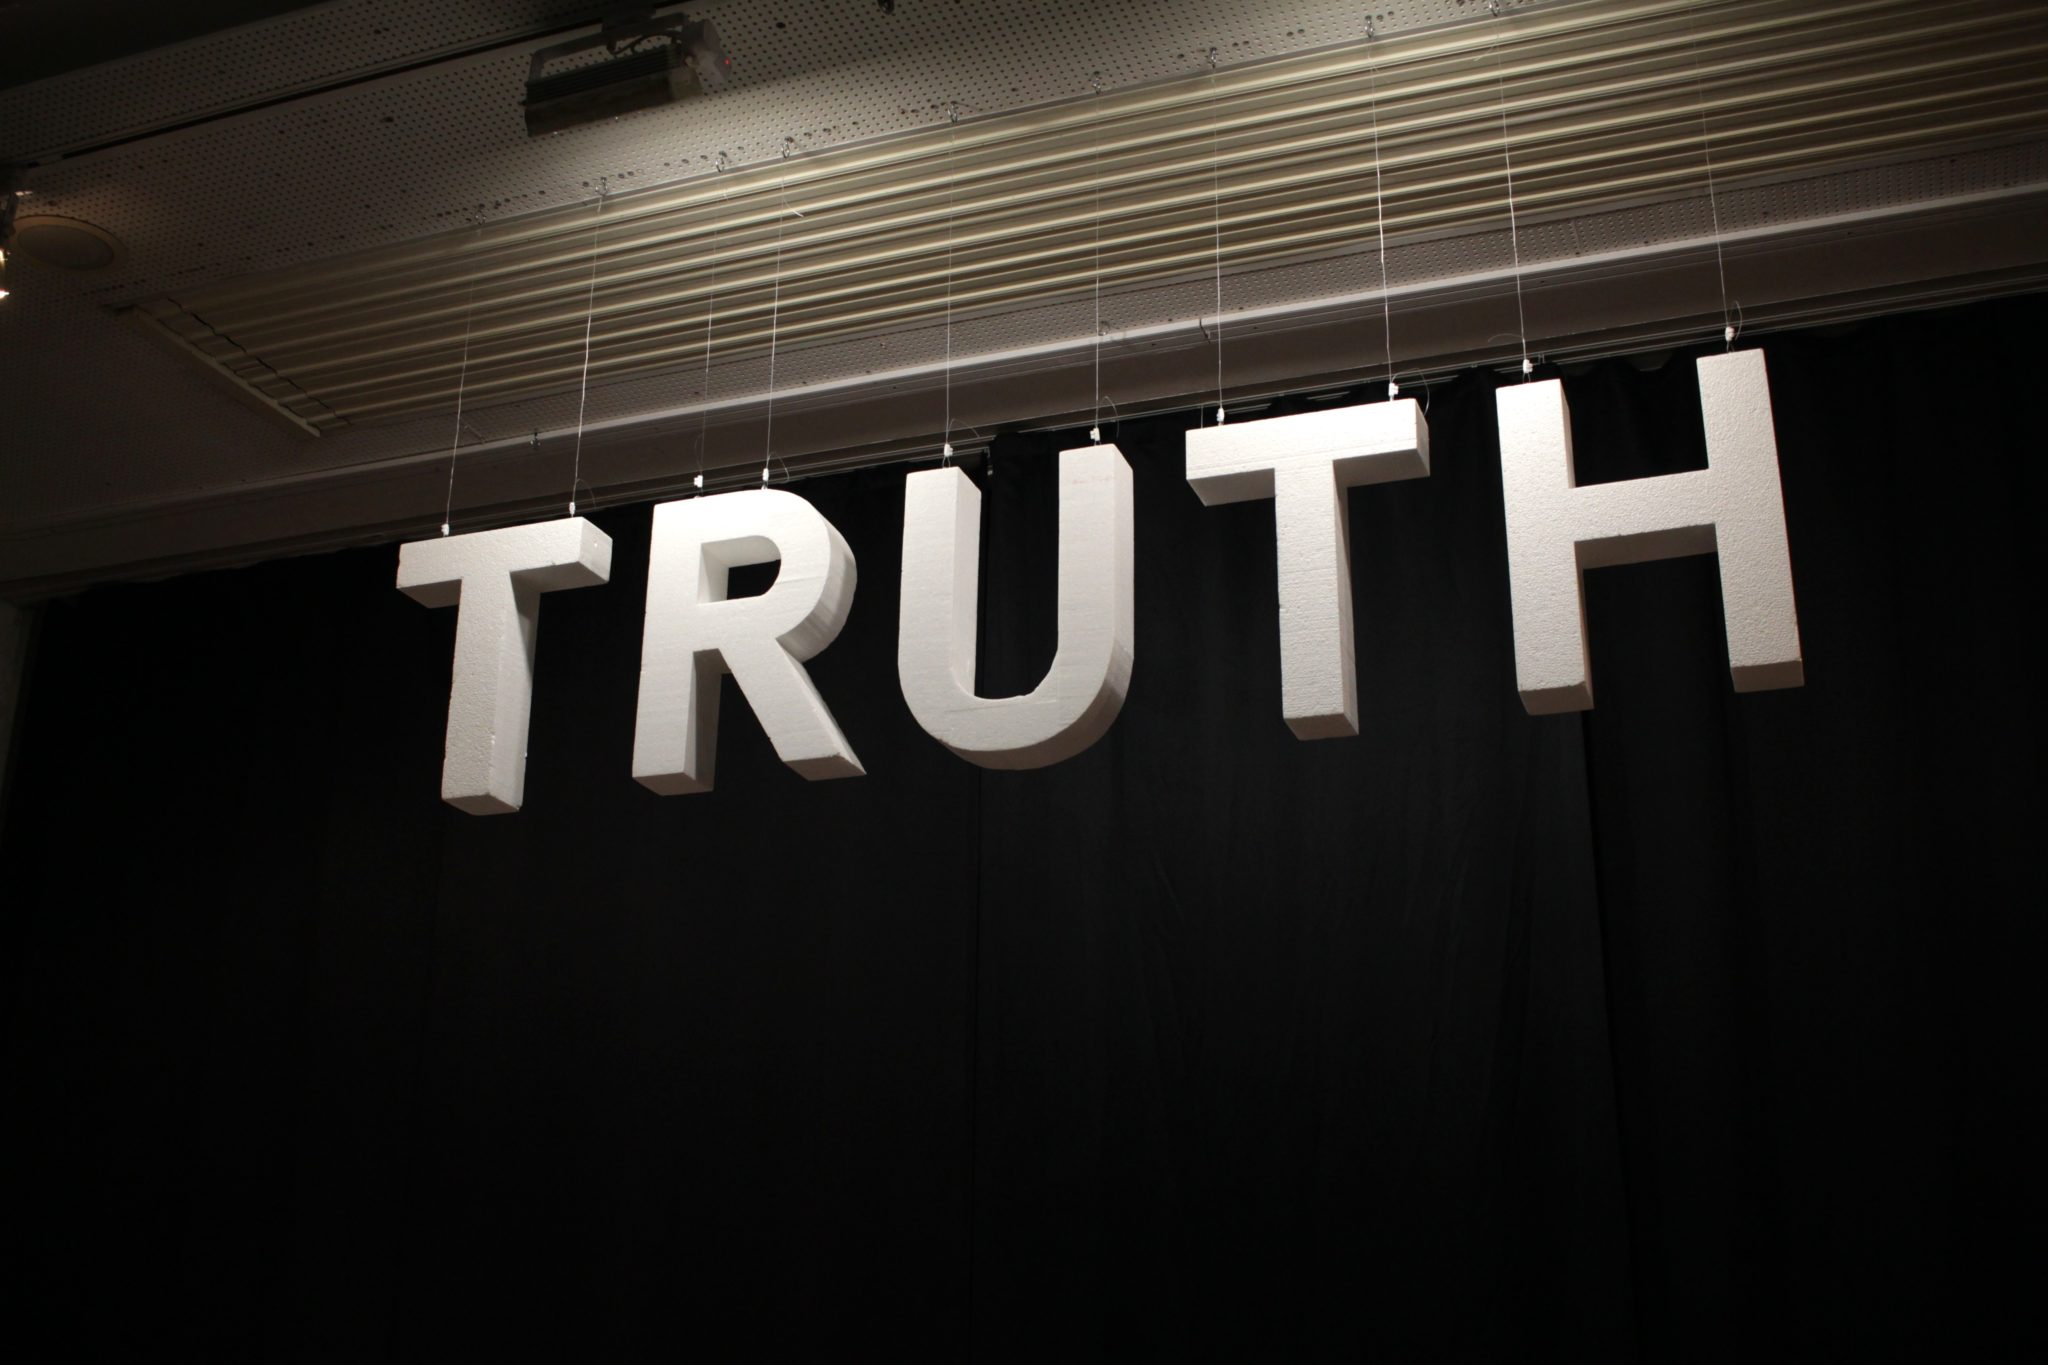 What is Truth? A reflection on the neglected reality of Truth with a capital T